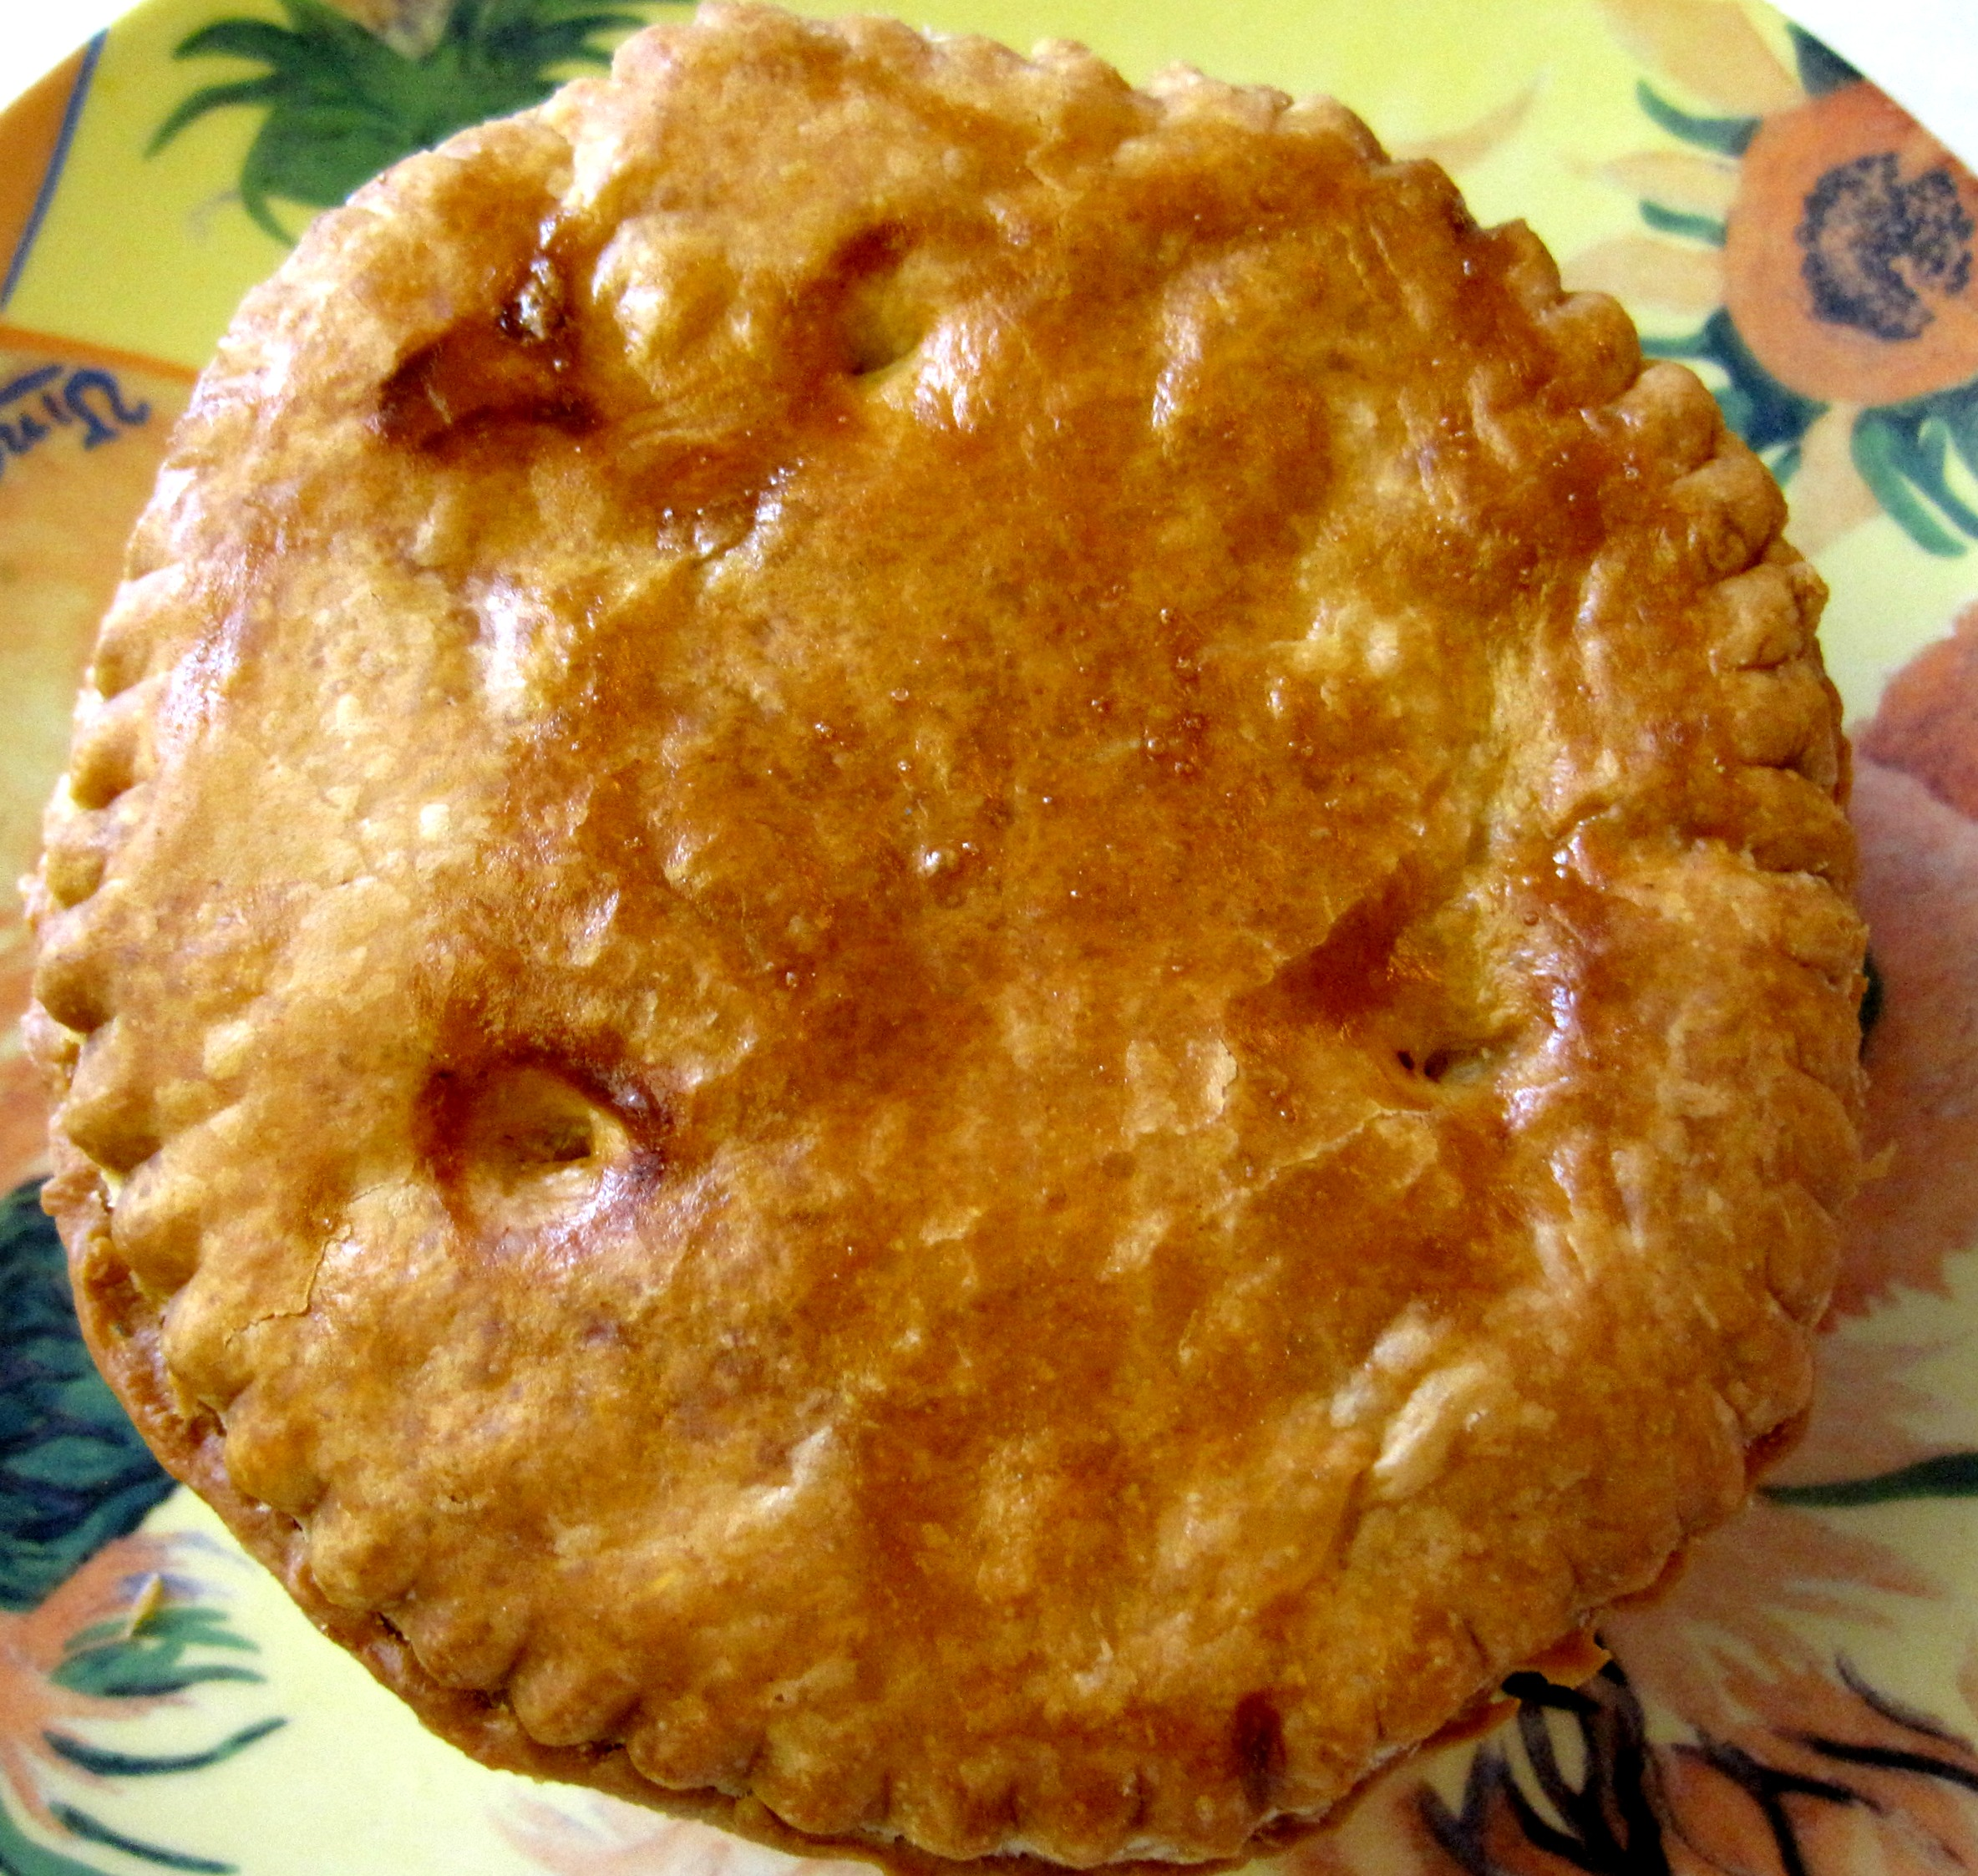 Pie-Not Meat Pie